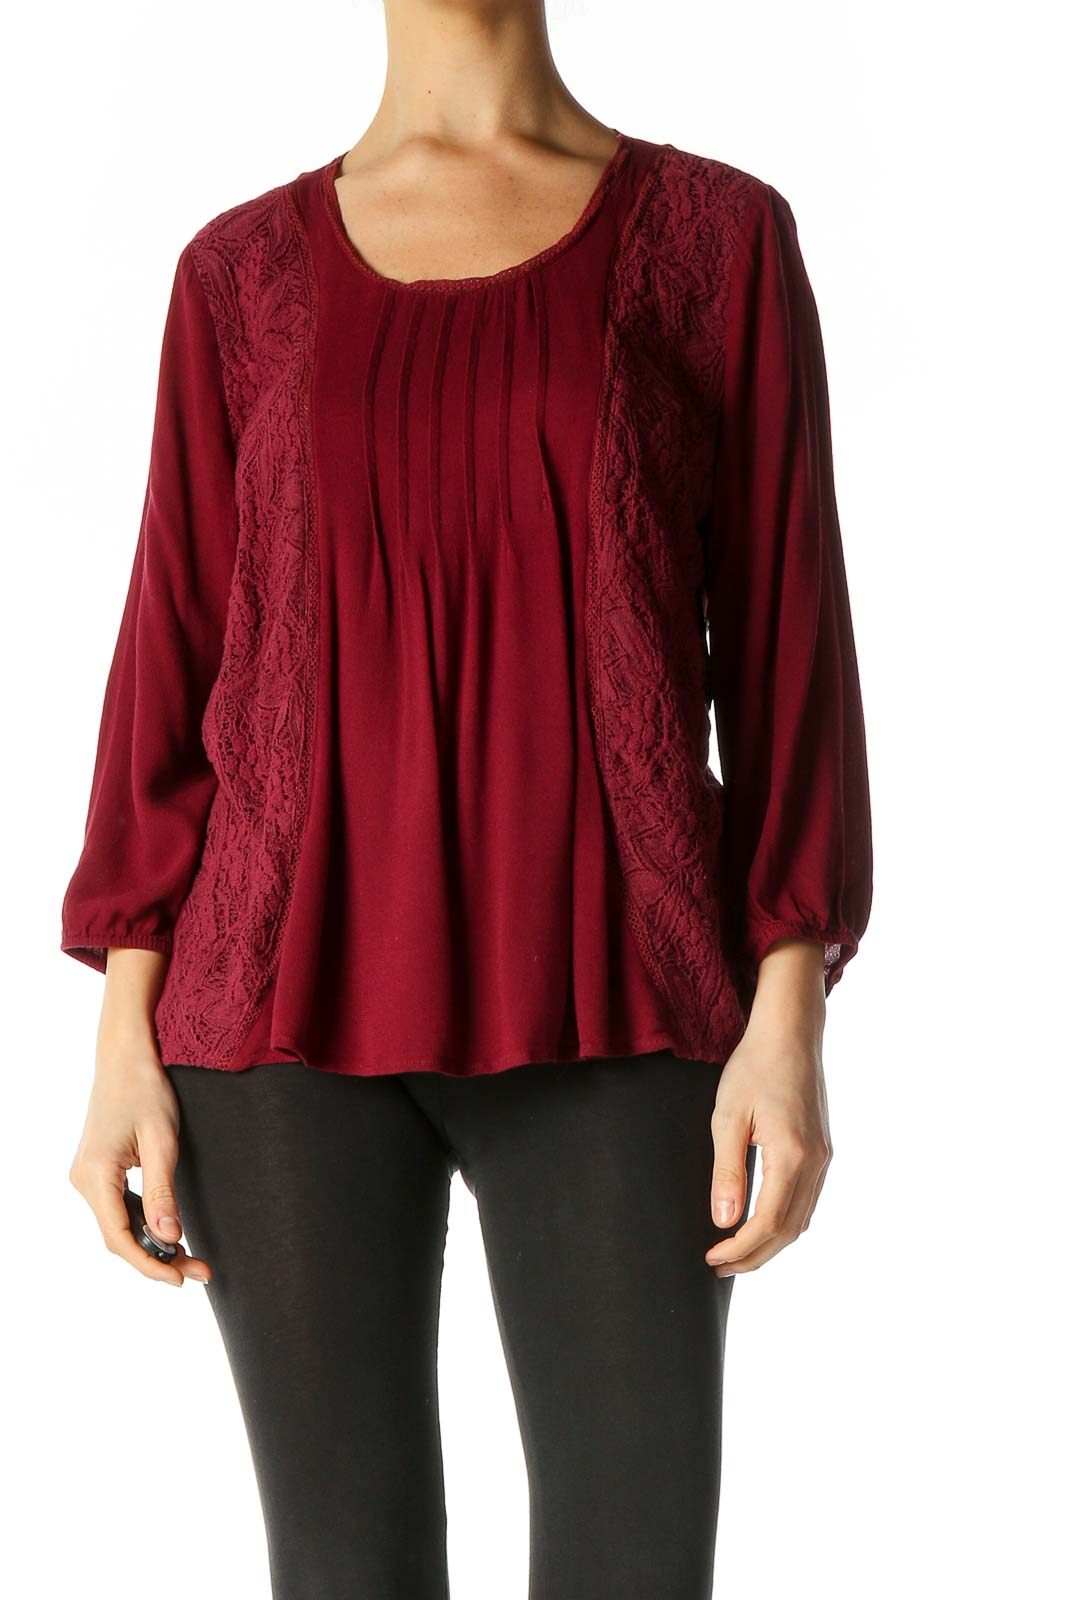 Red Solid Retro Blouse Front